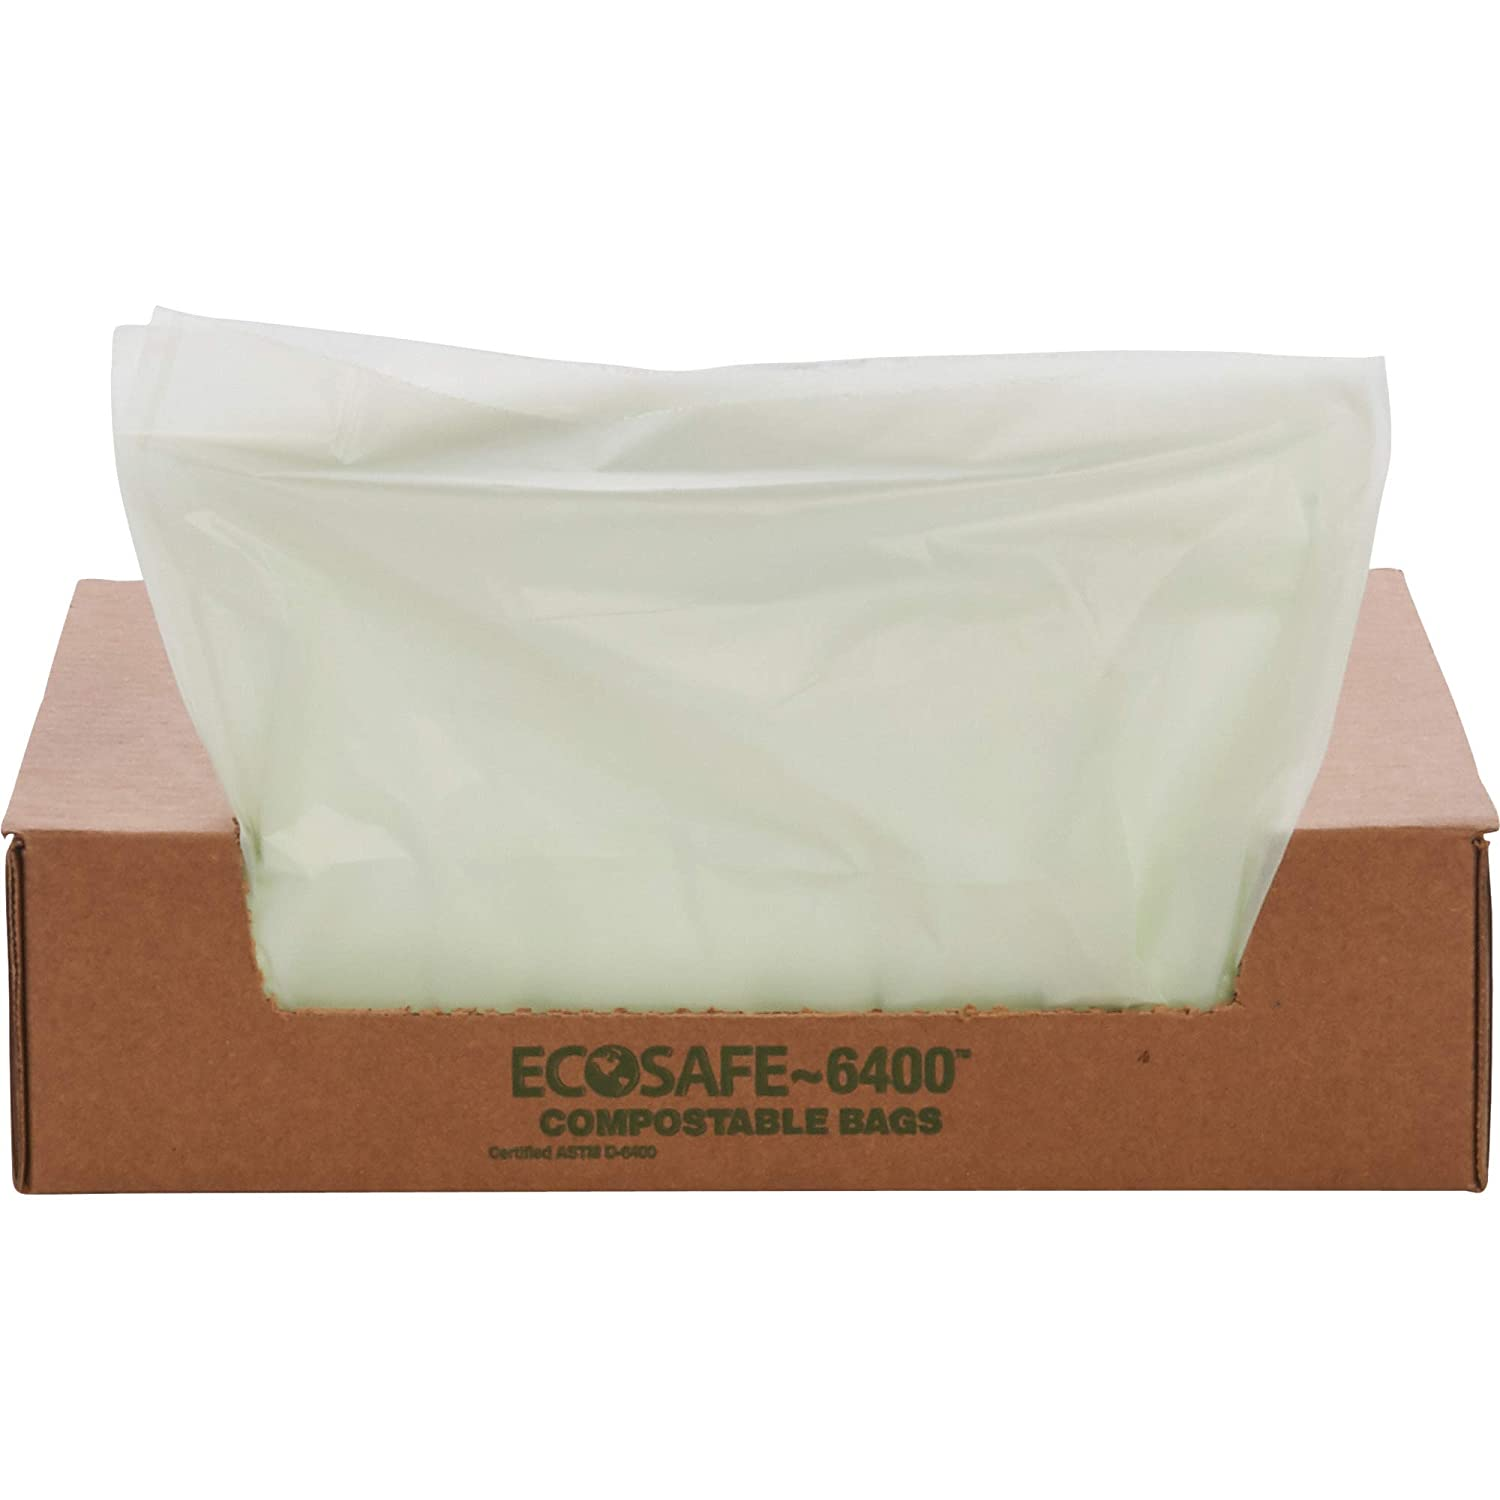 "STOUT by Envision STOE4248E85 EcoSafe-6400 Compostable Bags, 42"" x 48"", 48 gal Capacity, 0.85 mil Thickness, Green (Pack of 40)"